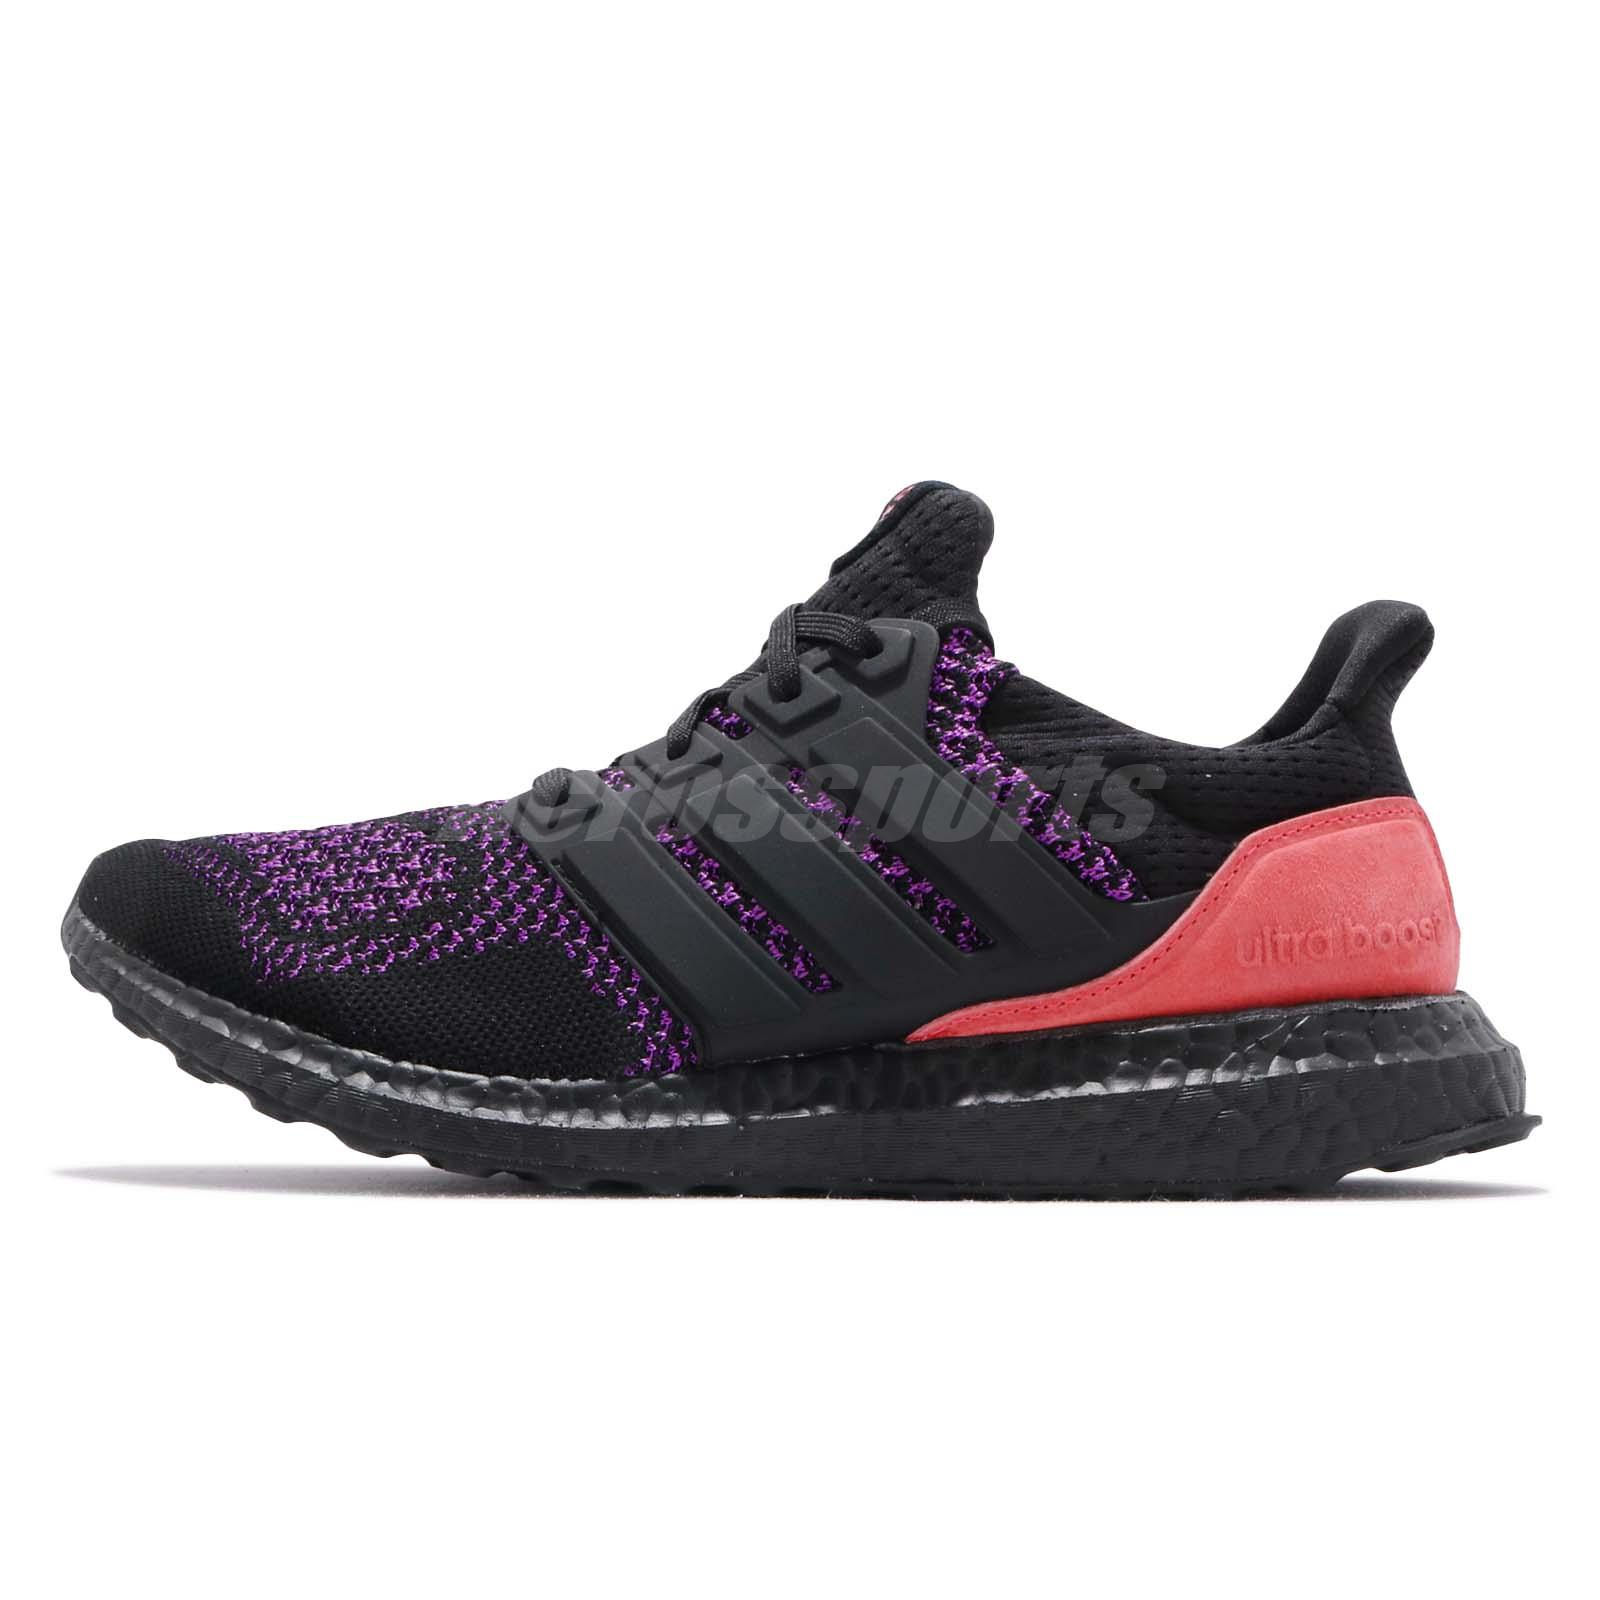 outlet store 4dcf2 ca325 Details about adidas UltraBOOST CBC Black Purple Pink Men Running Training  Shoe Sneaker EE3712